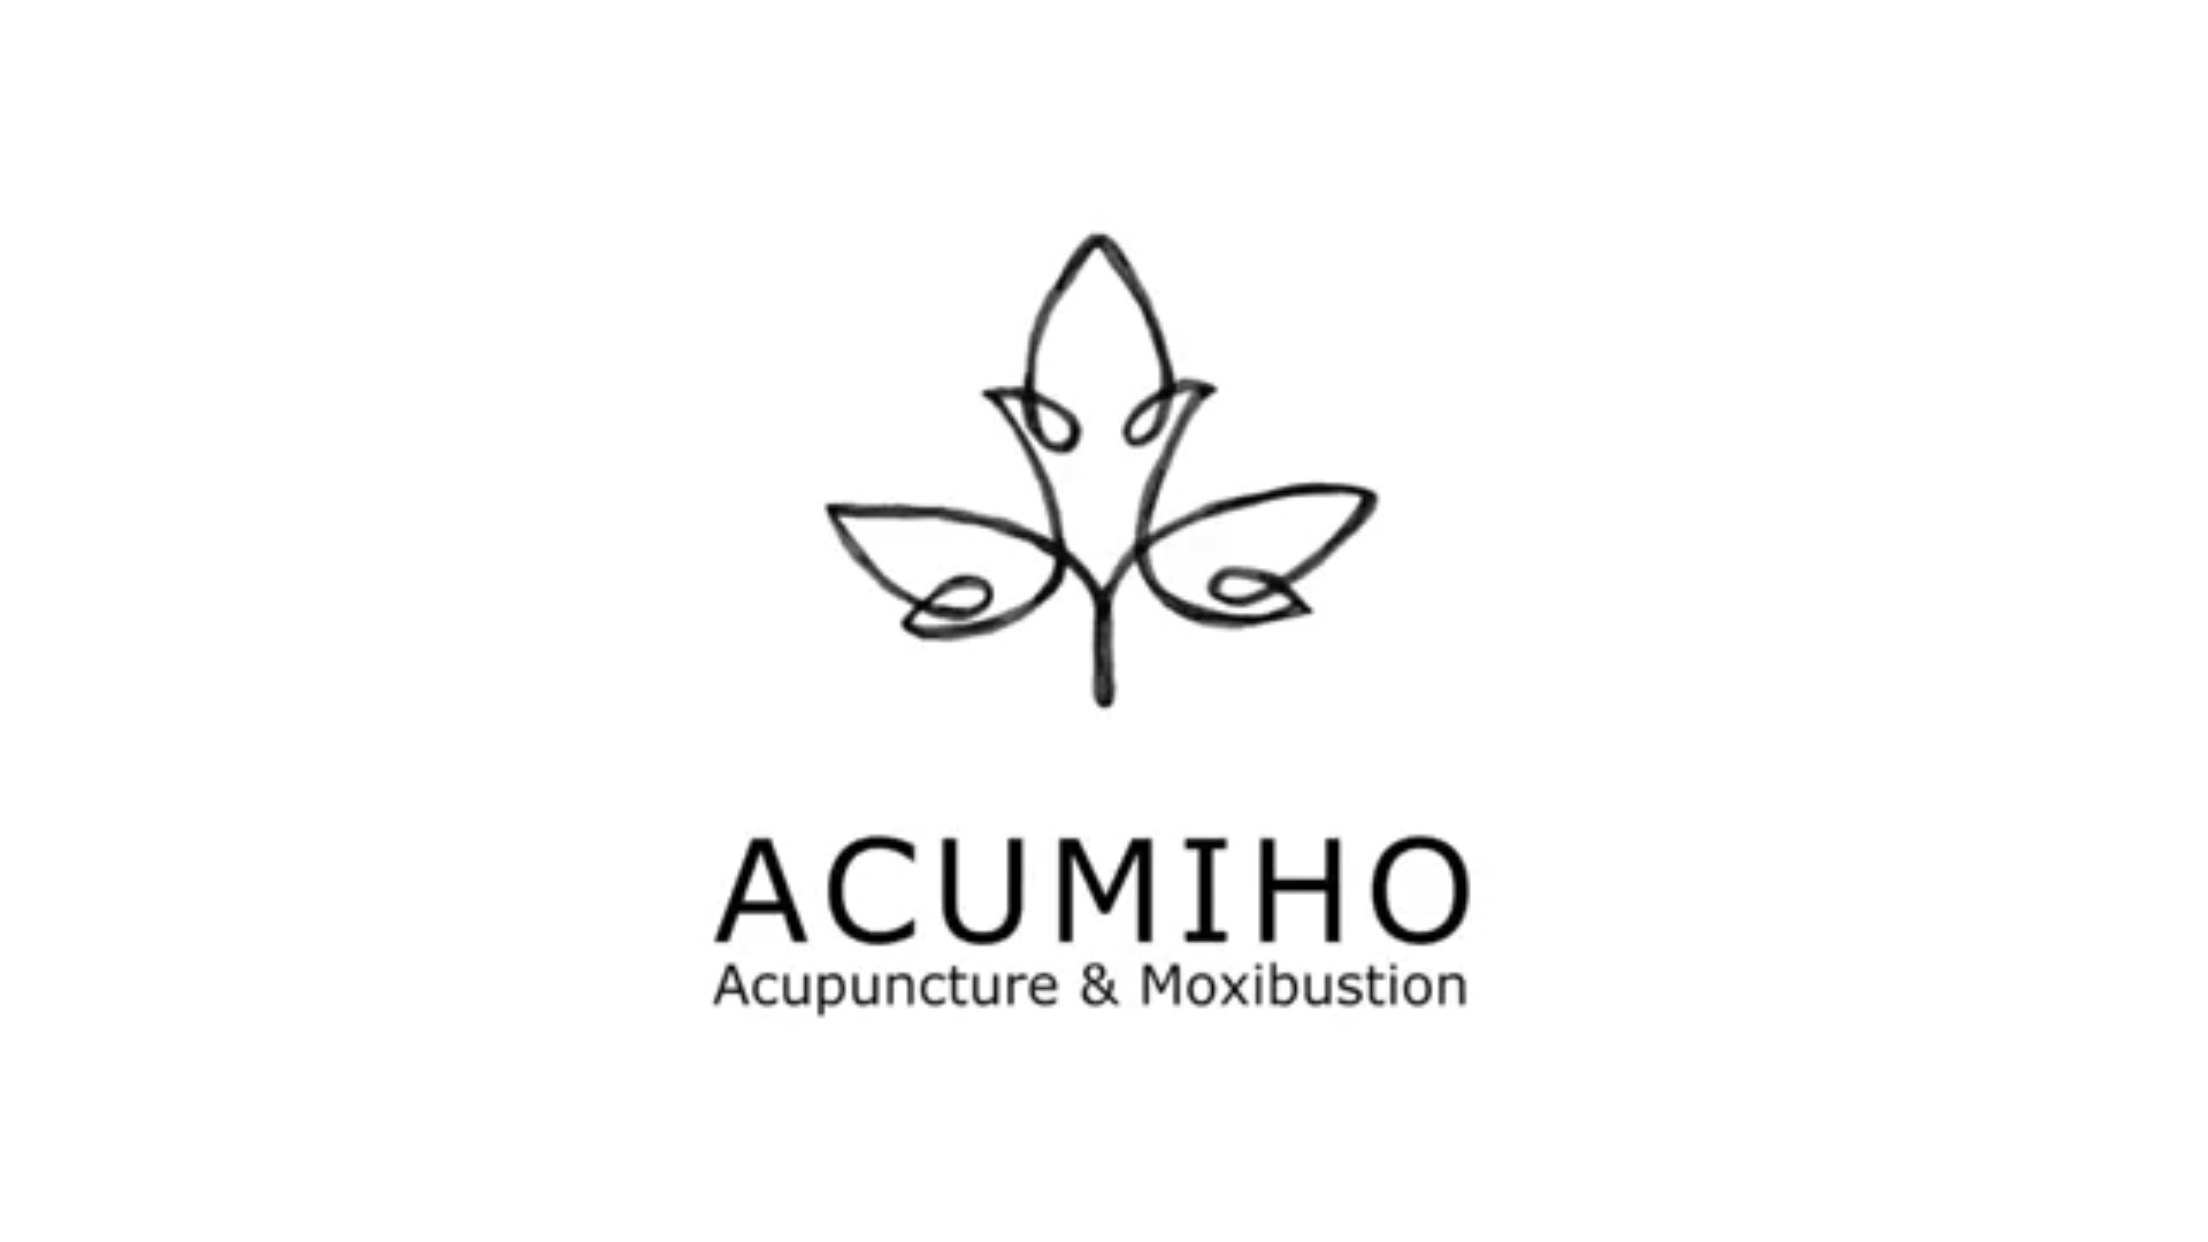 Acumiho Moxibustion - Tenkyu Procedure